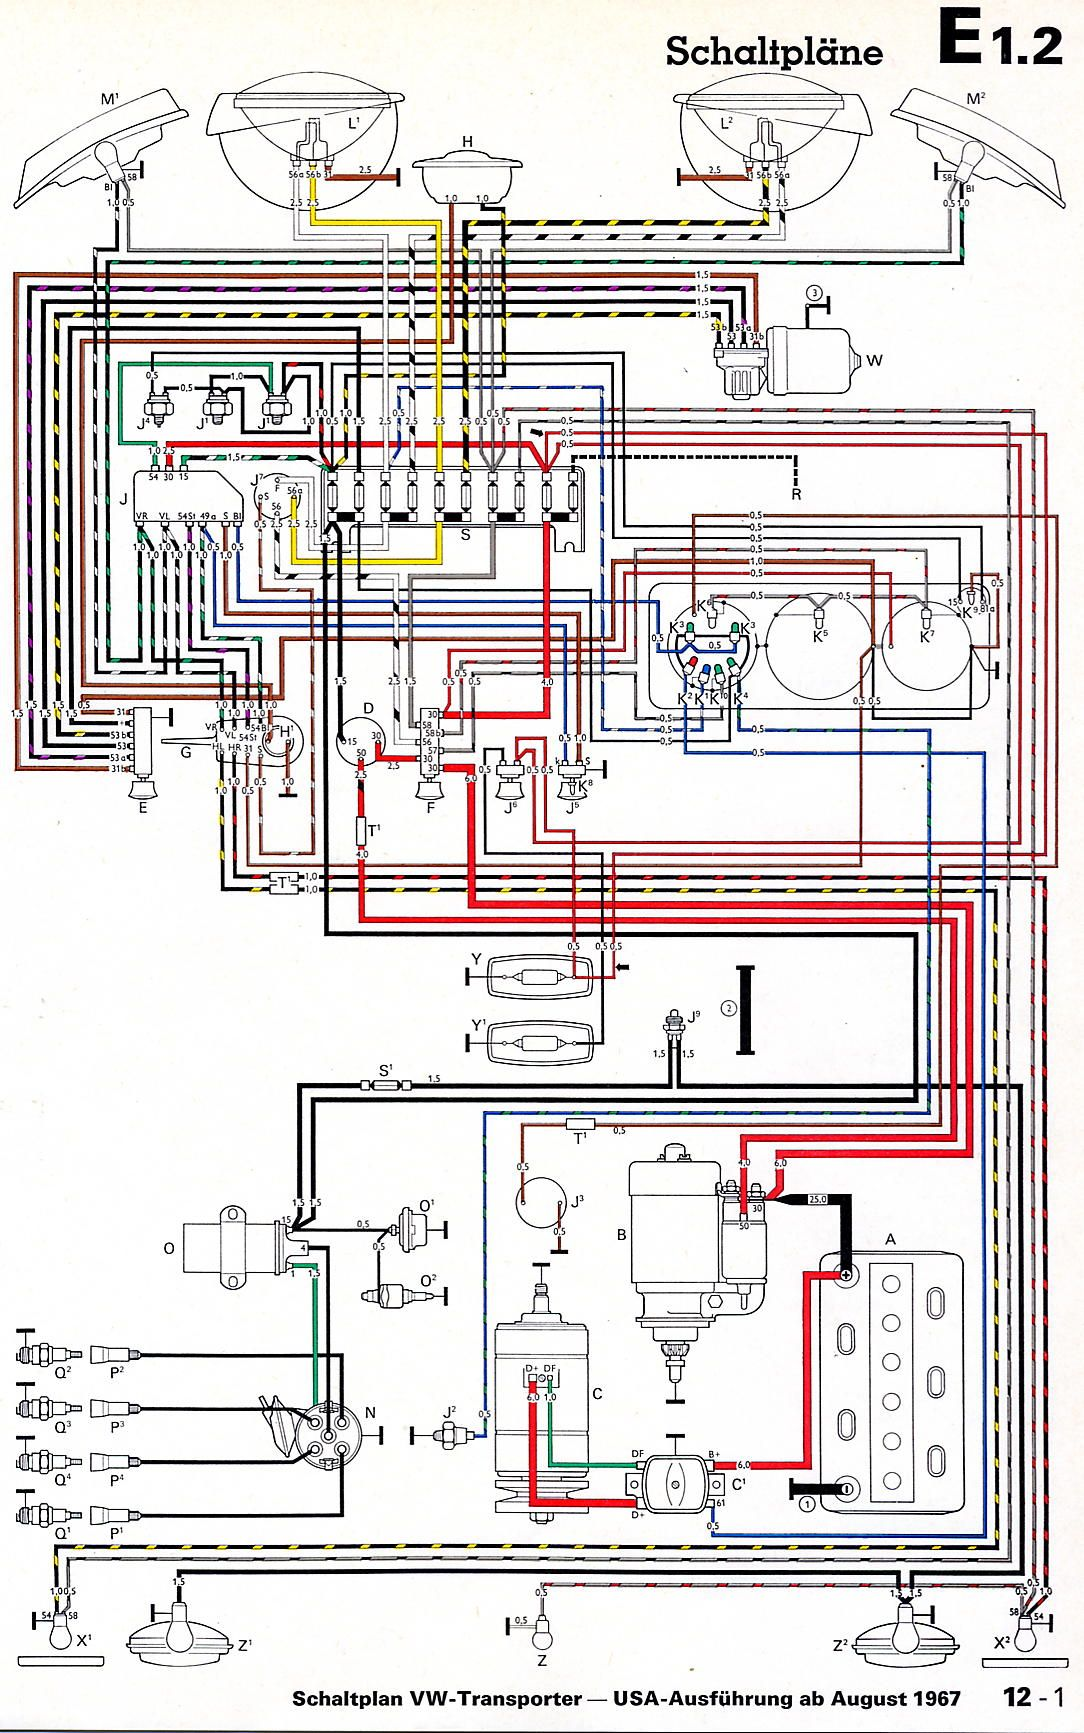 vw bus fuse diagram wiring diagram forwardvw vanagon fuse diagram wiring diagrams mon 1979 vw bus [ 1084 x 1733 Pixel ]